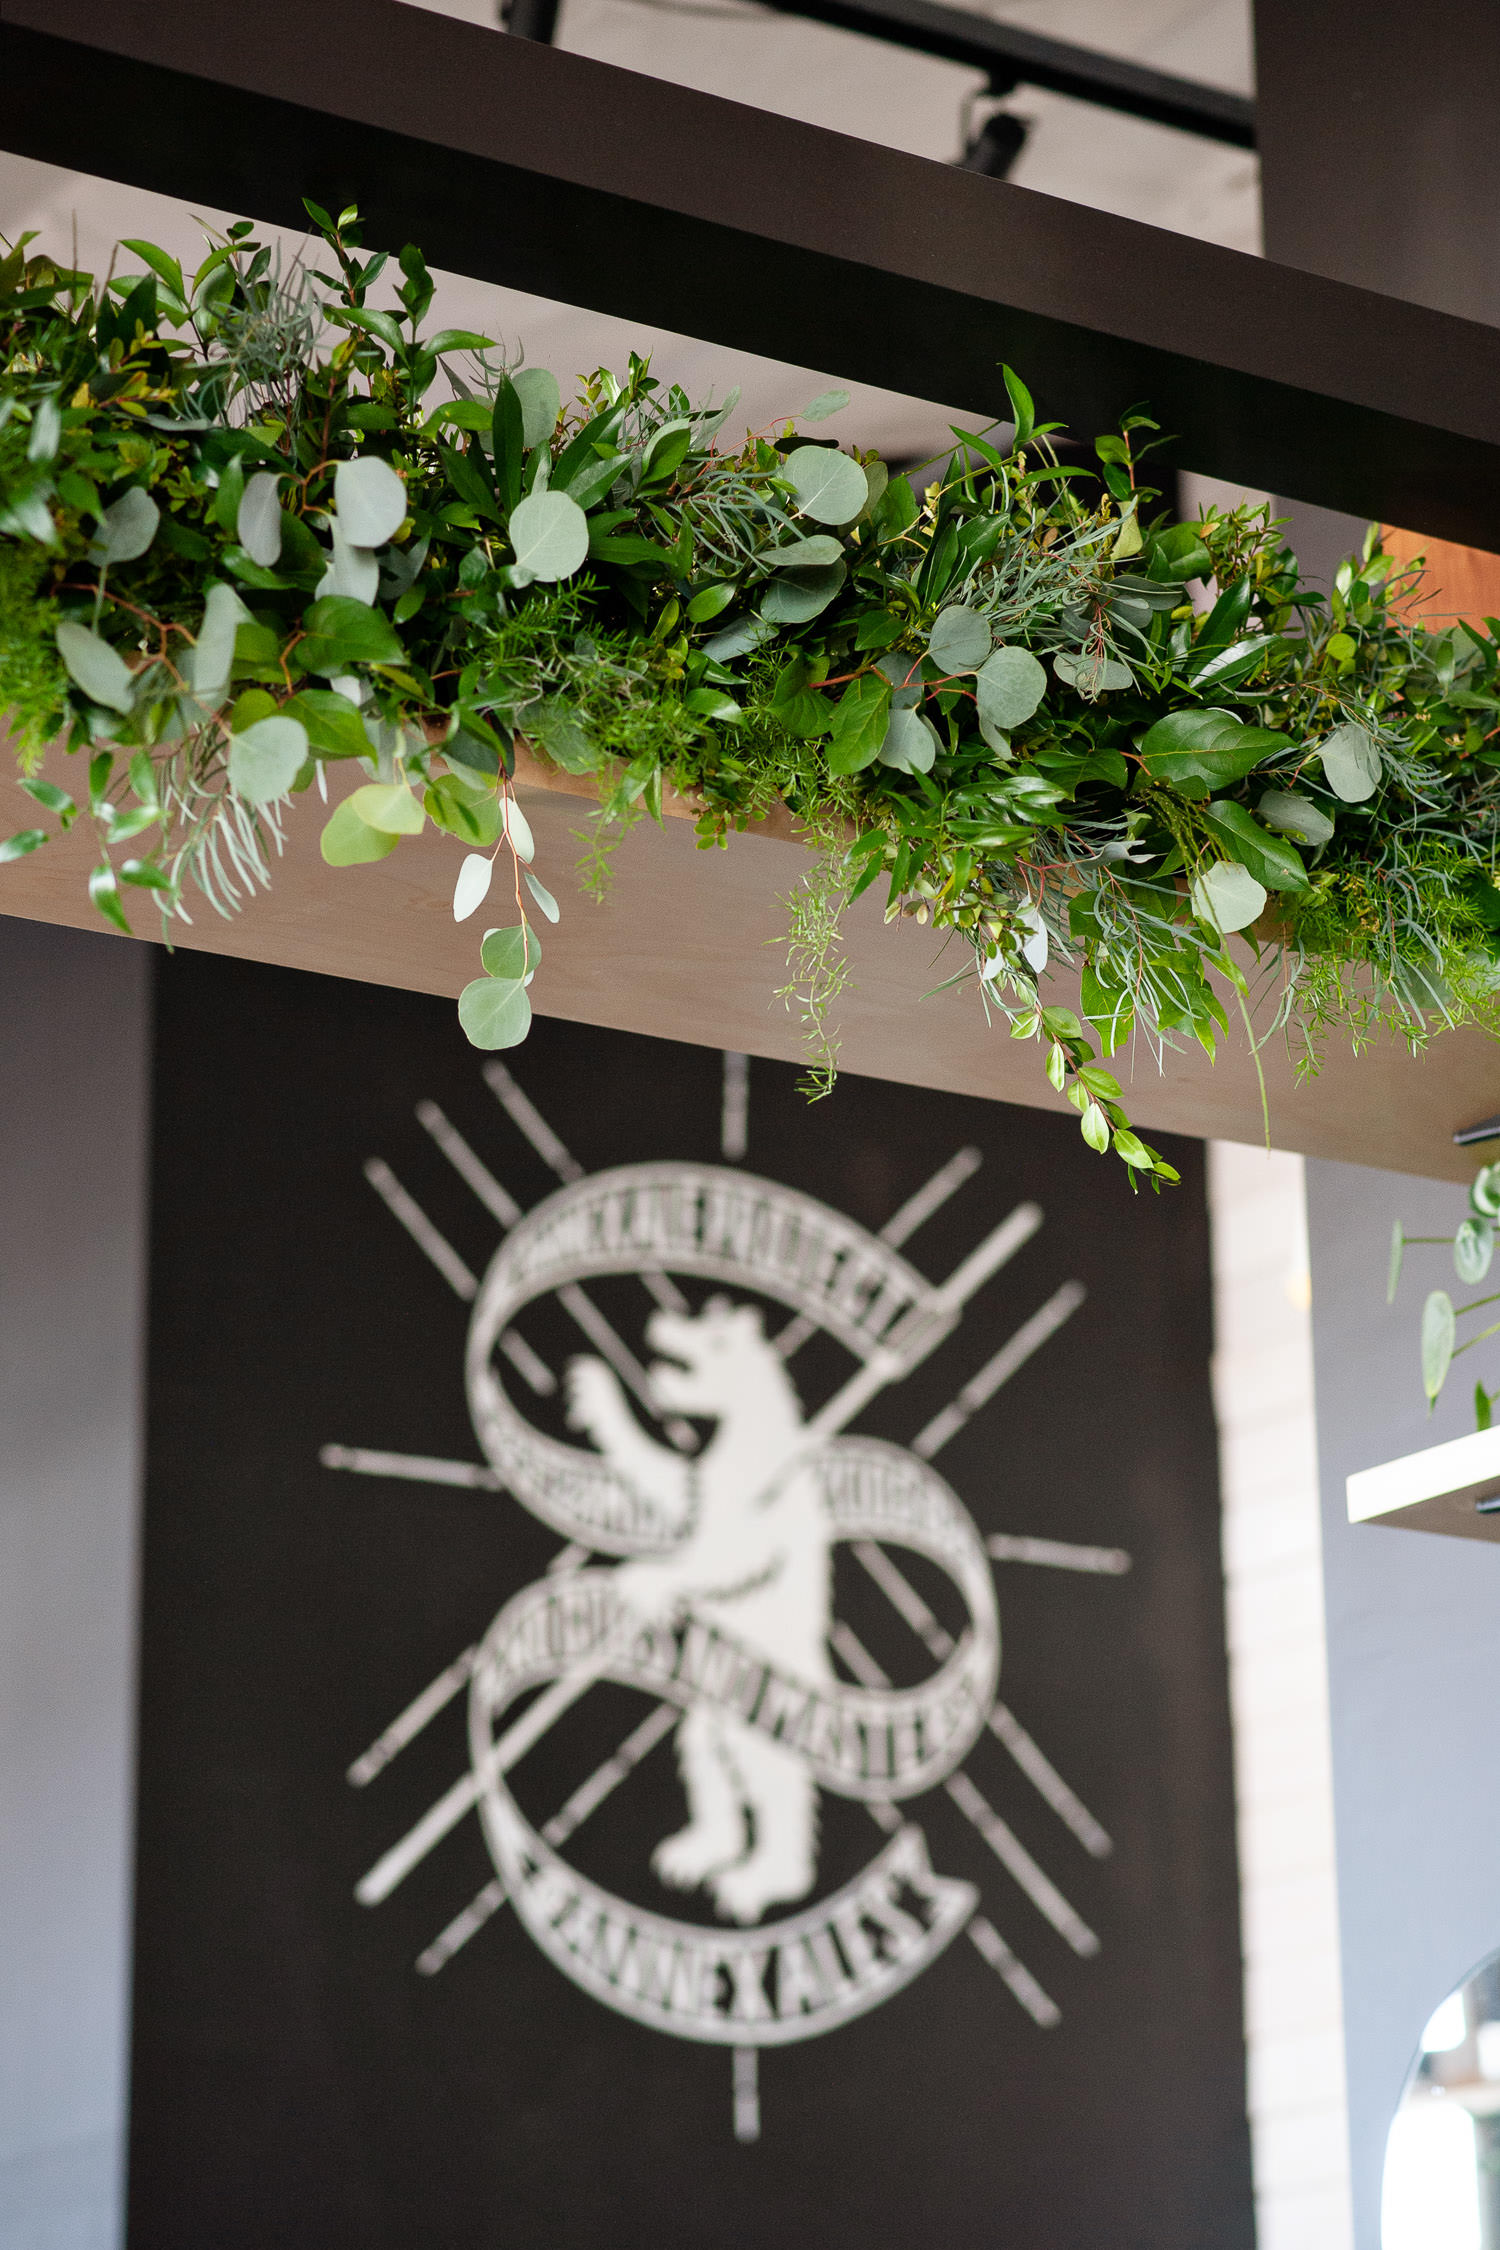 Greenery from Sweet Bloom adorns the ceremony space at Annex Ale Project